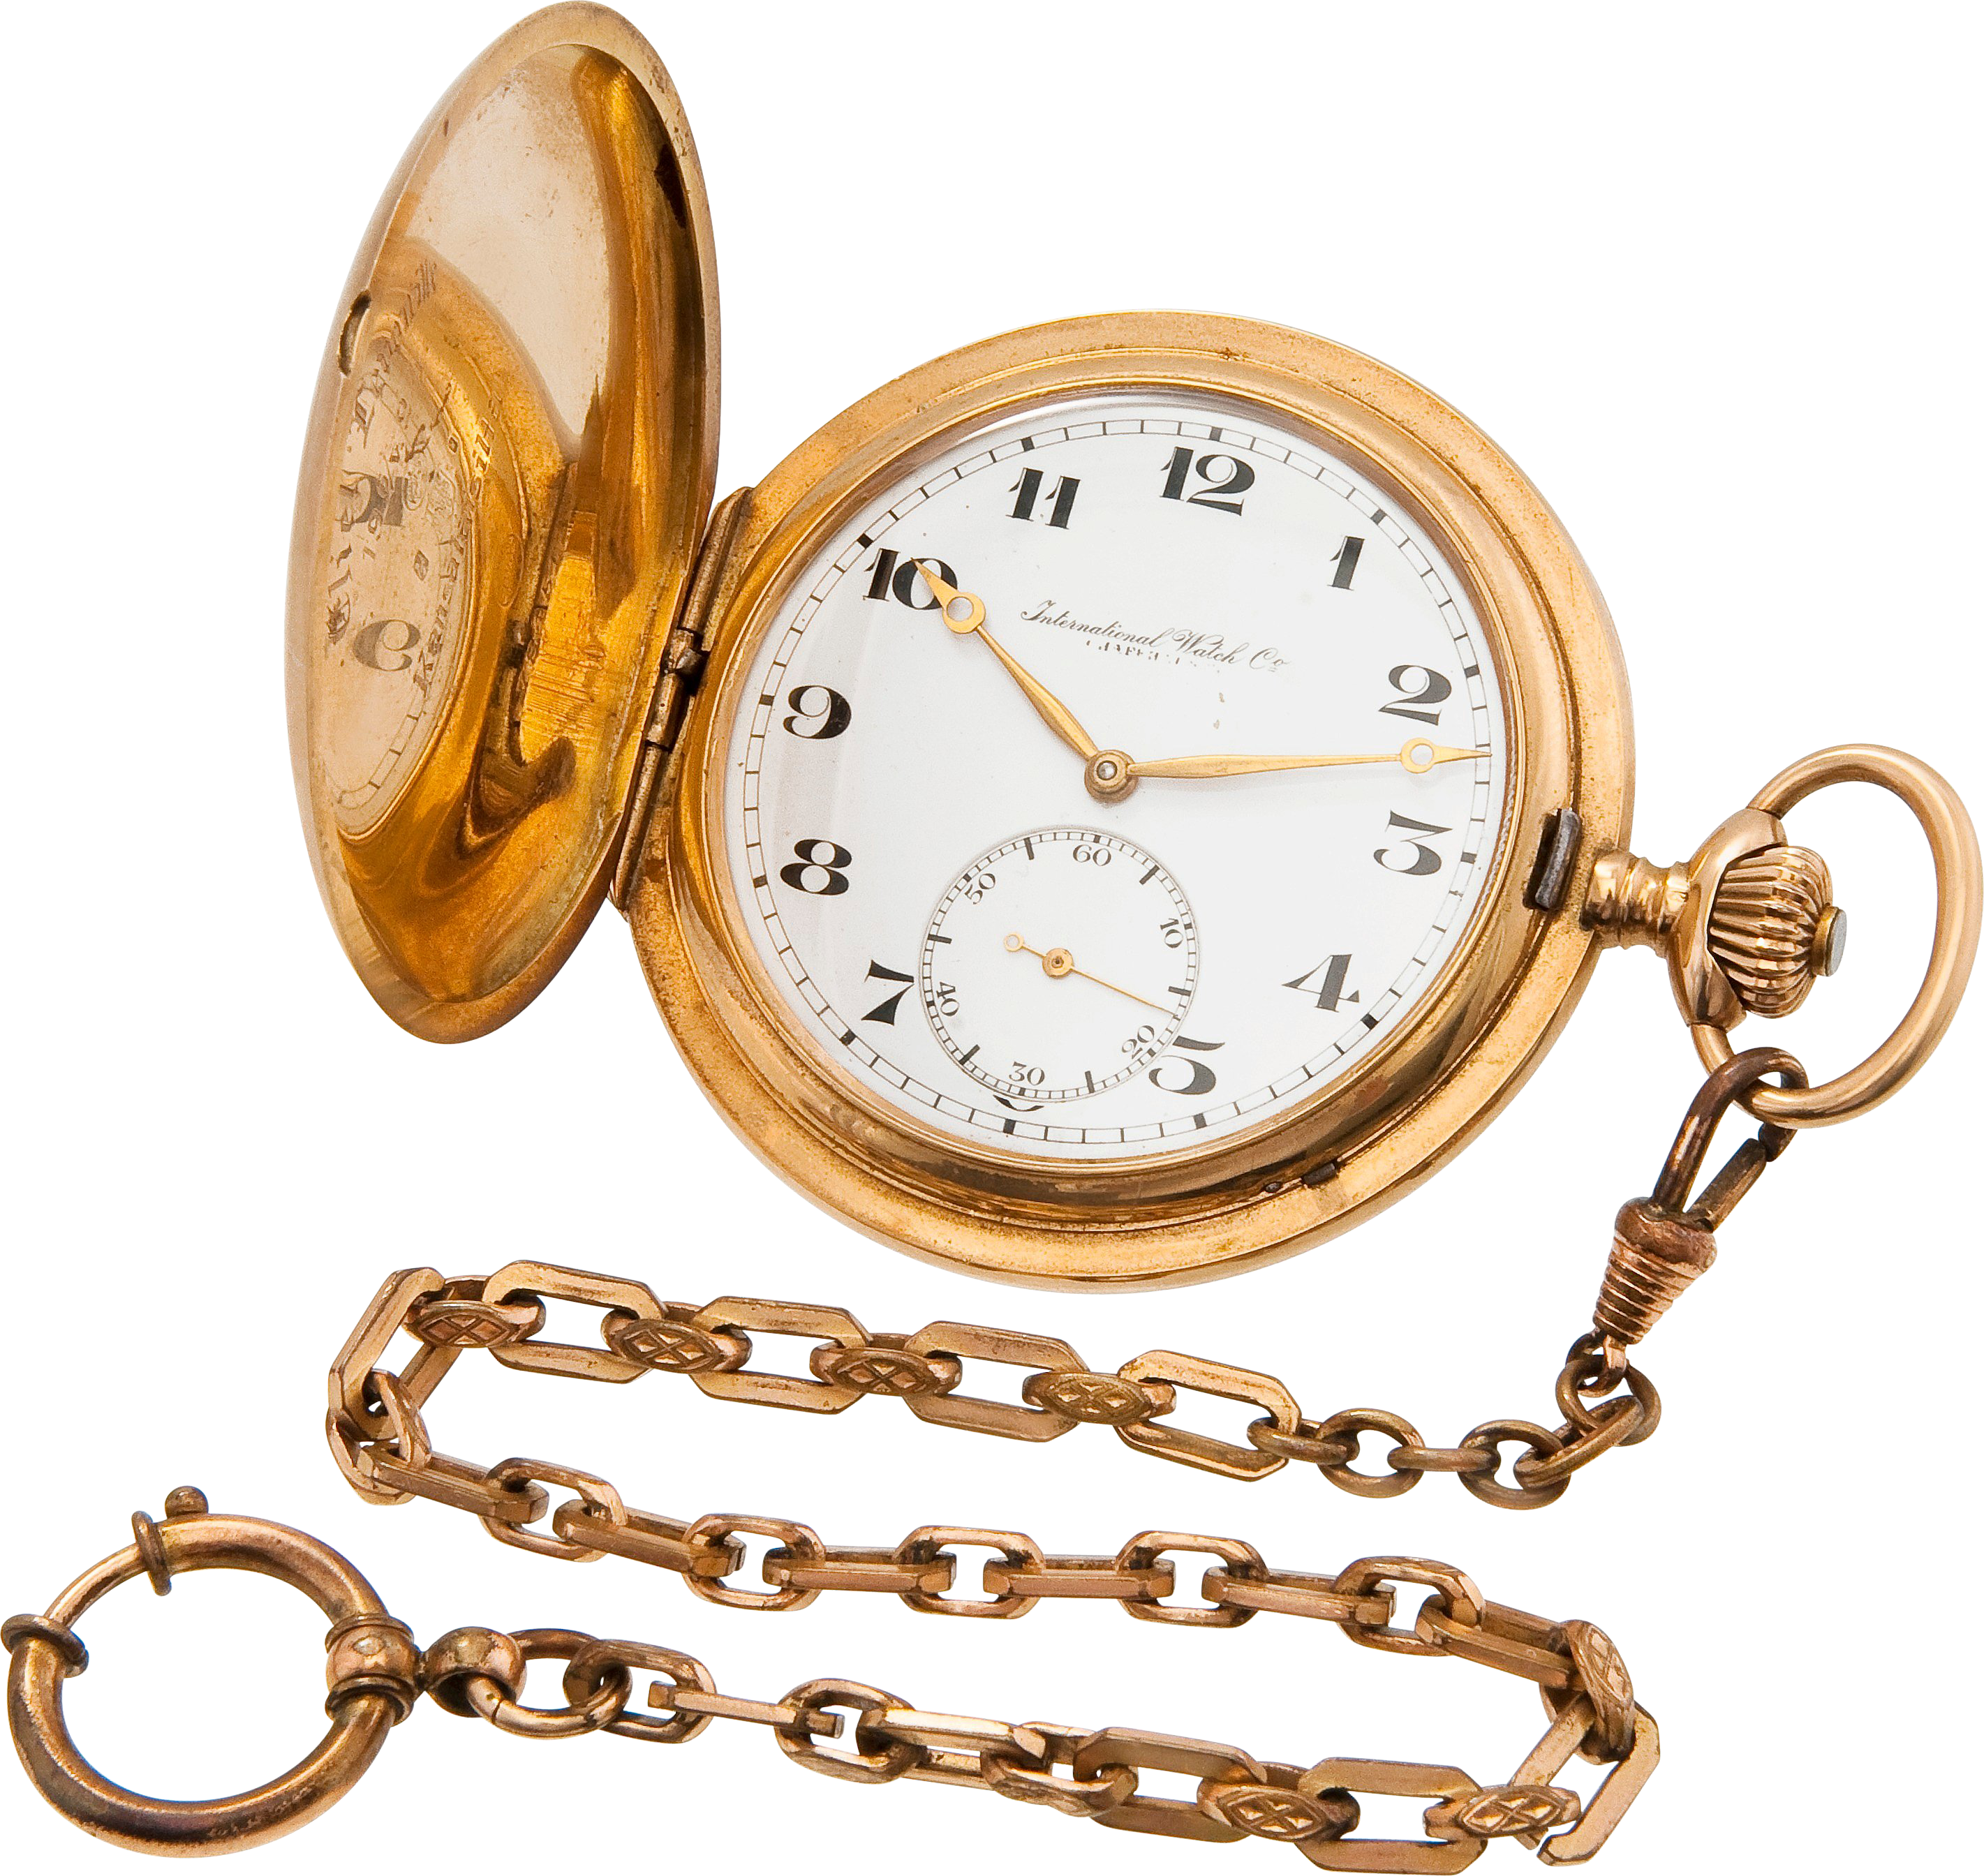 Golden Chain Stop Watch Png Image Pocket Watch Chain Watch Chain Wrist Watch